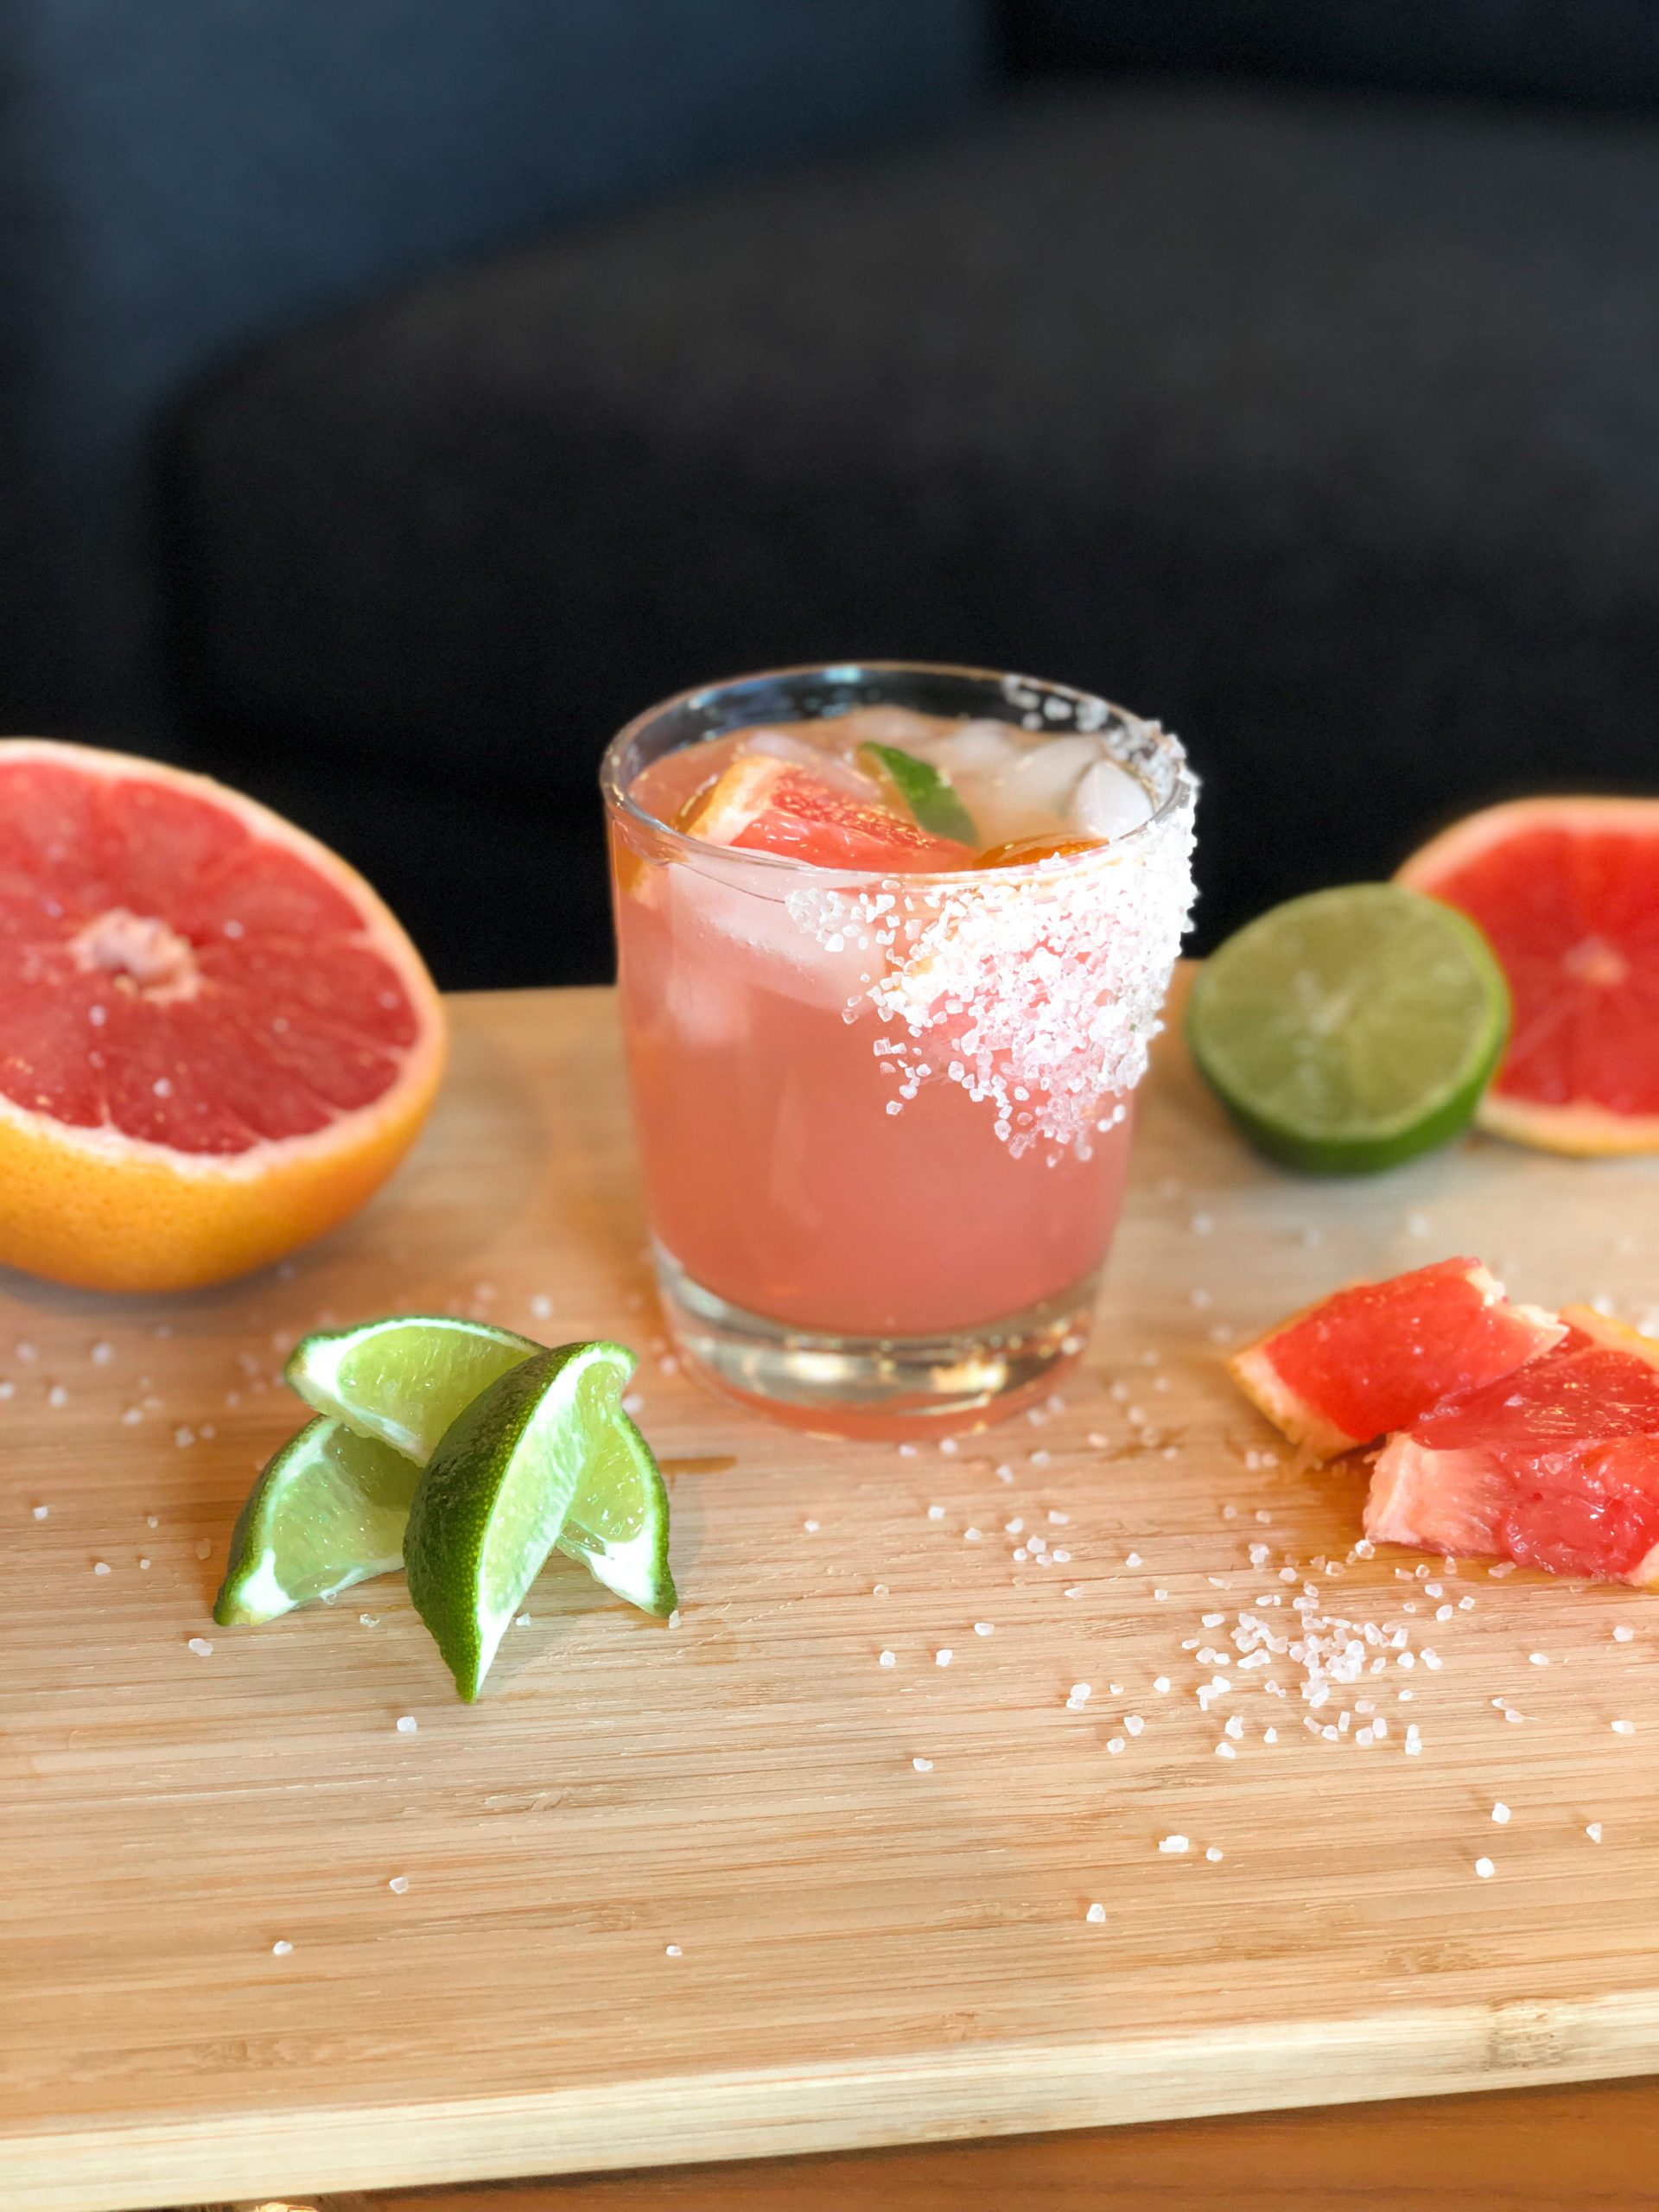 Paloma alcoholic drink with grapefruit and lime garnish